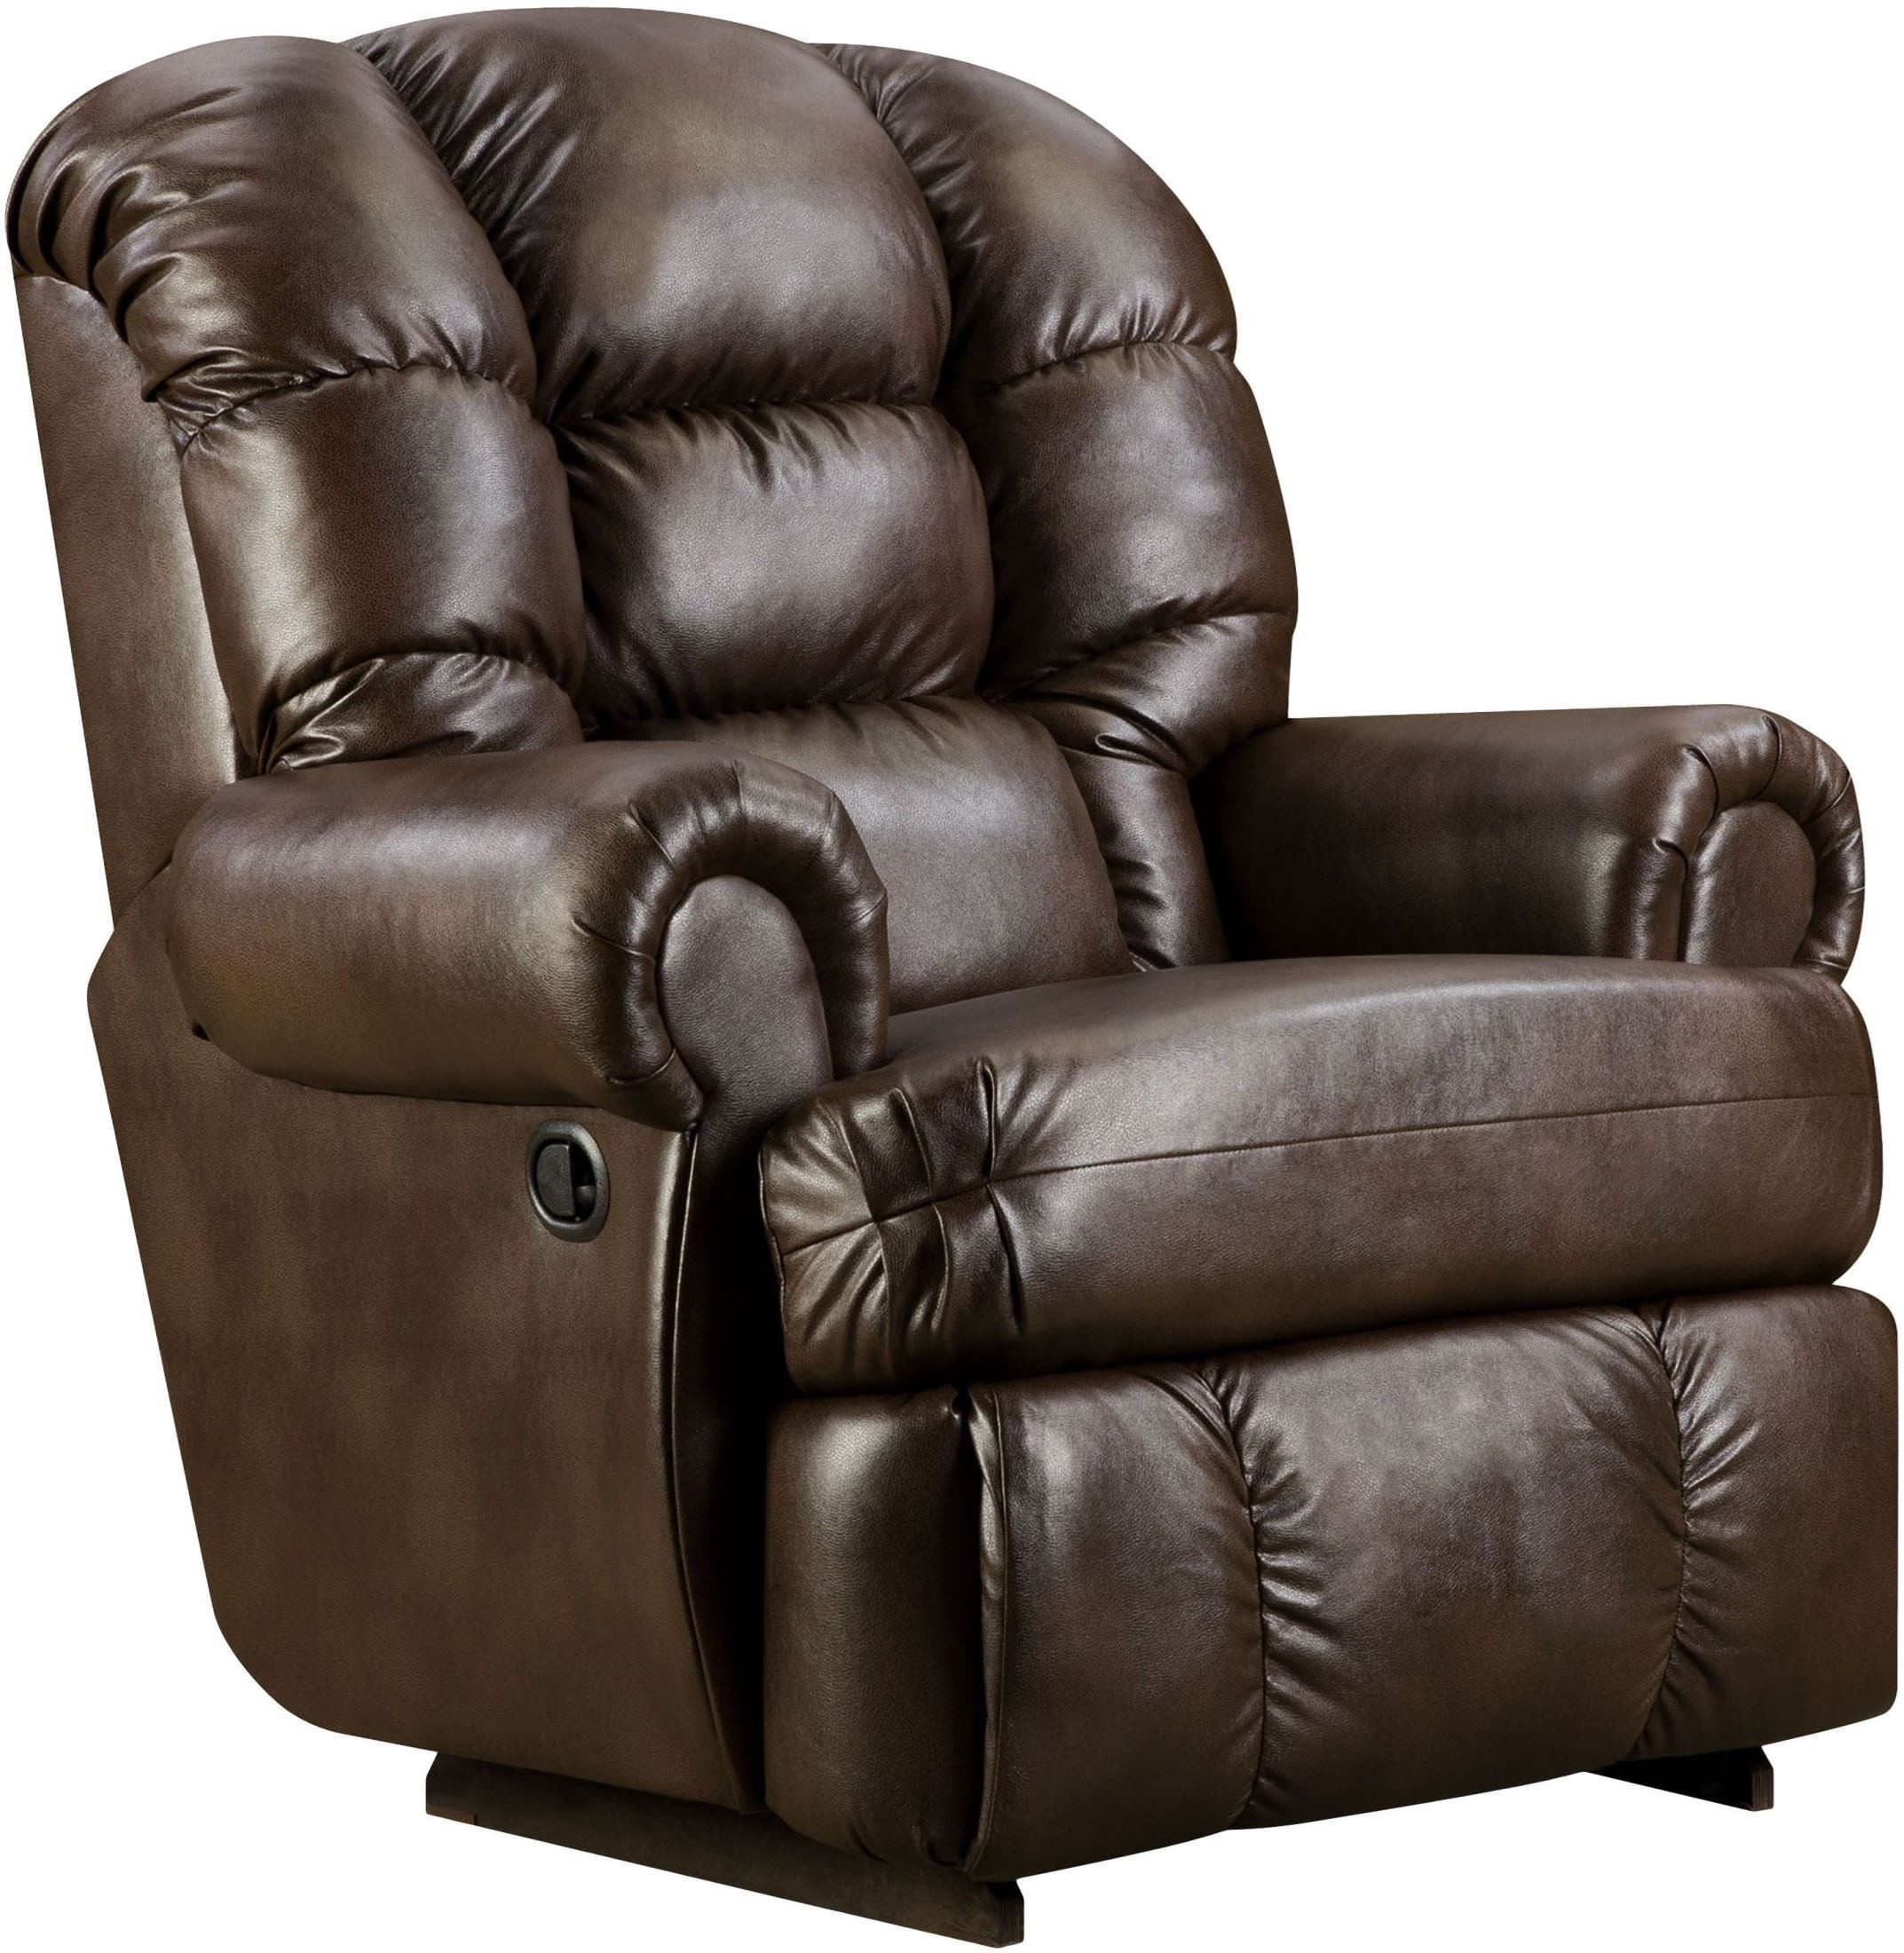 big and tall recliner chair brown leather chairs for living room capacity loggins espresso